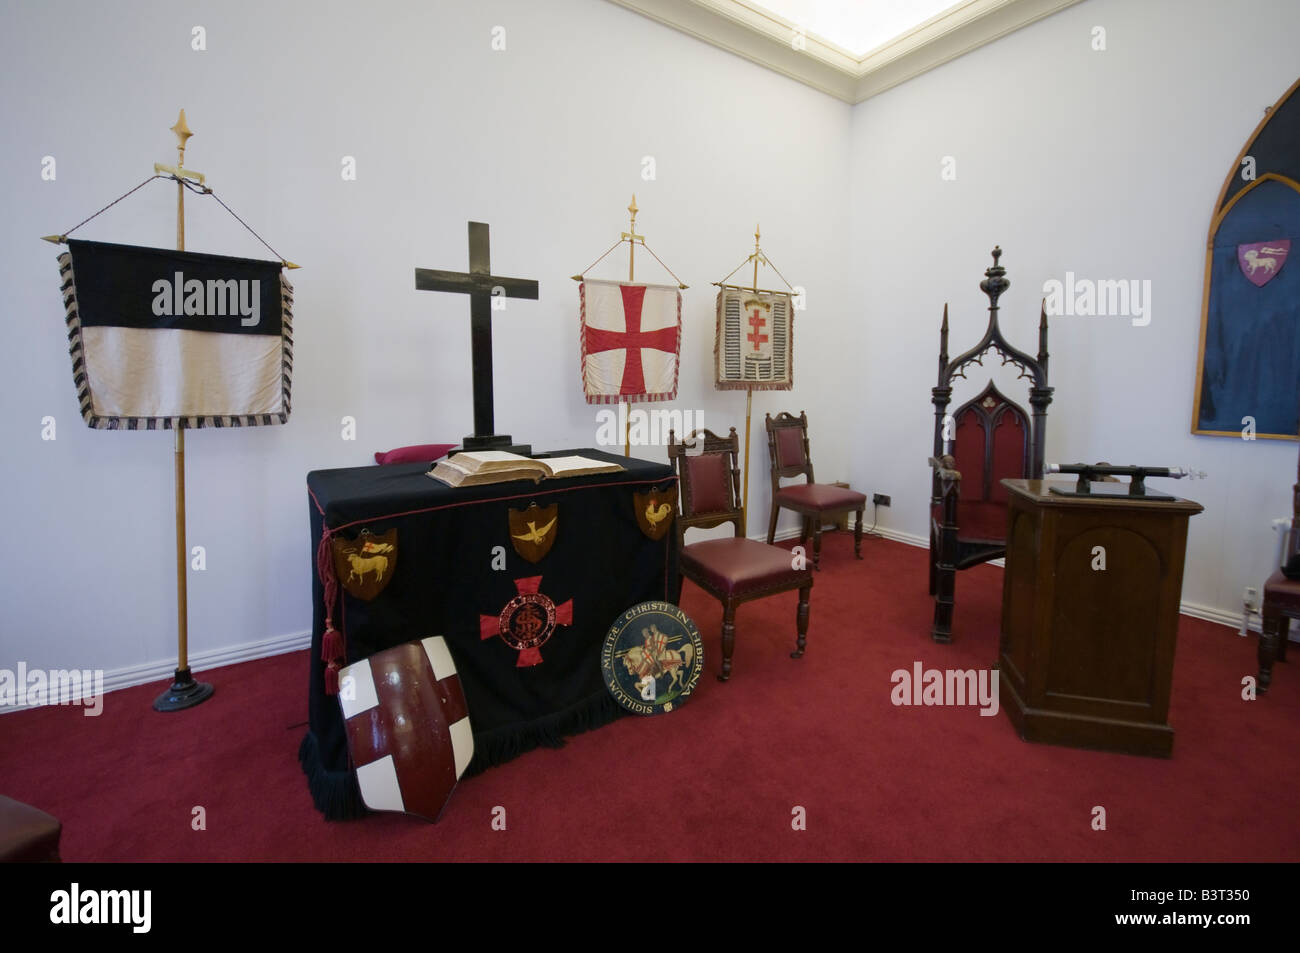 Knights Templar banners at the Grand Master's position in a Masonic Hall. - Stock Image